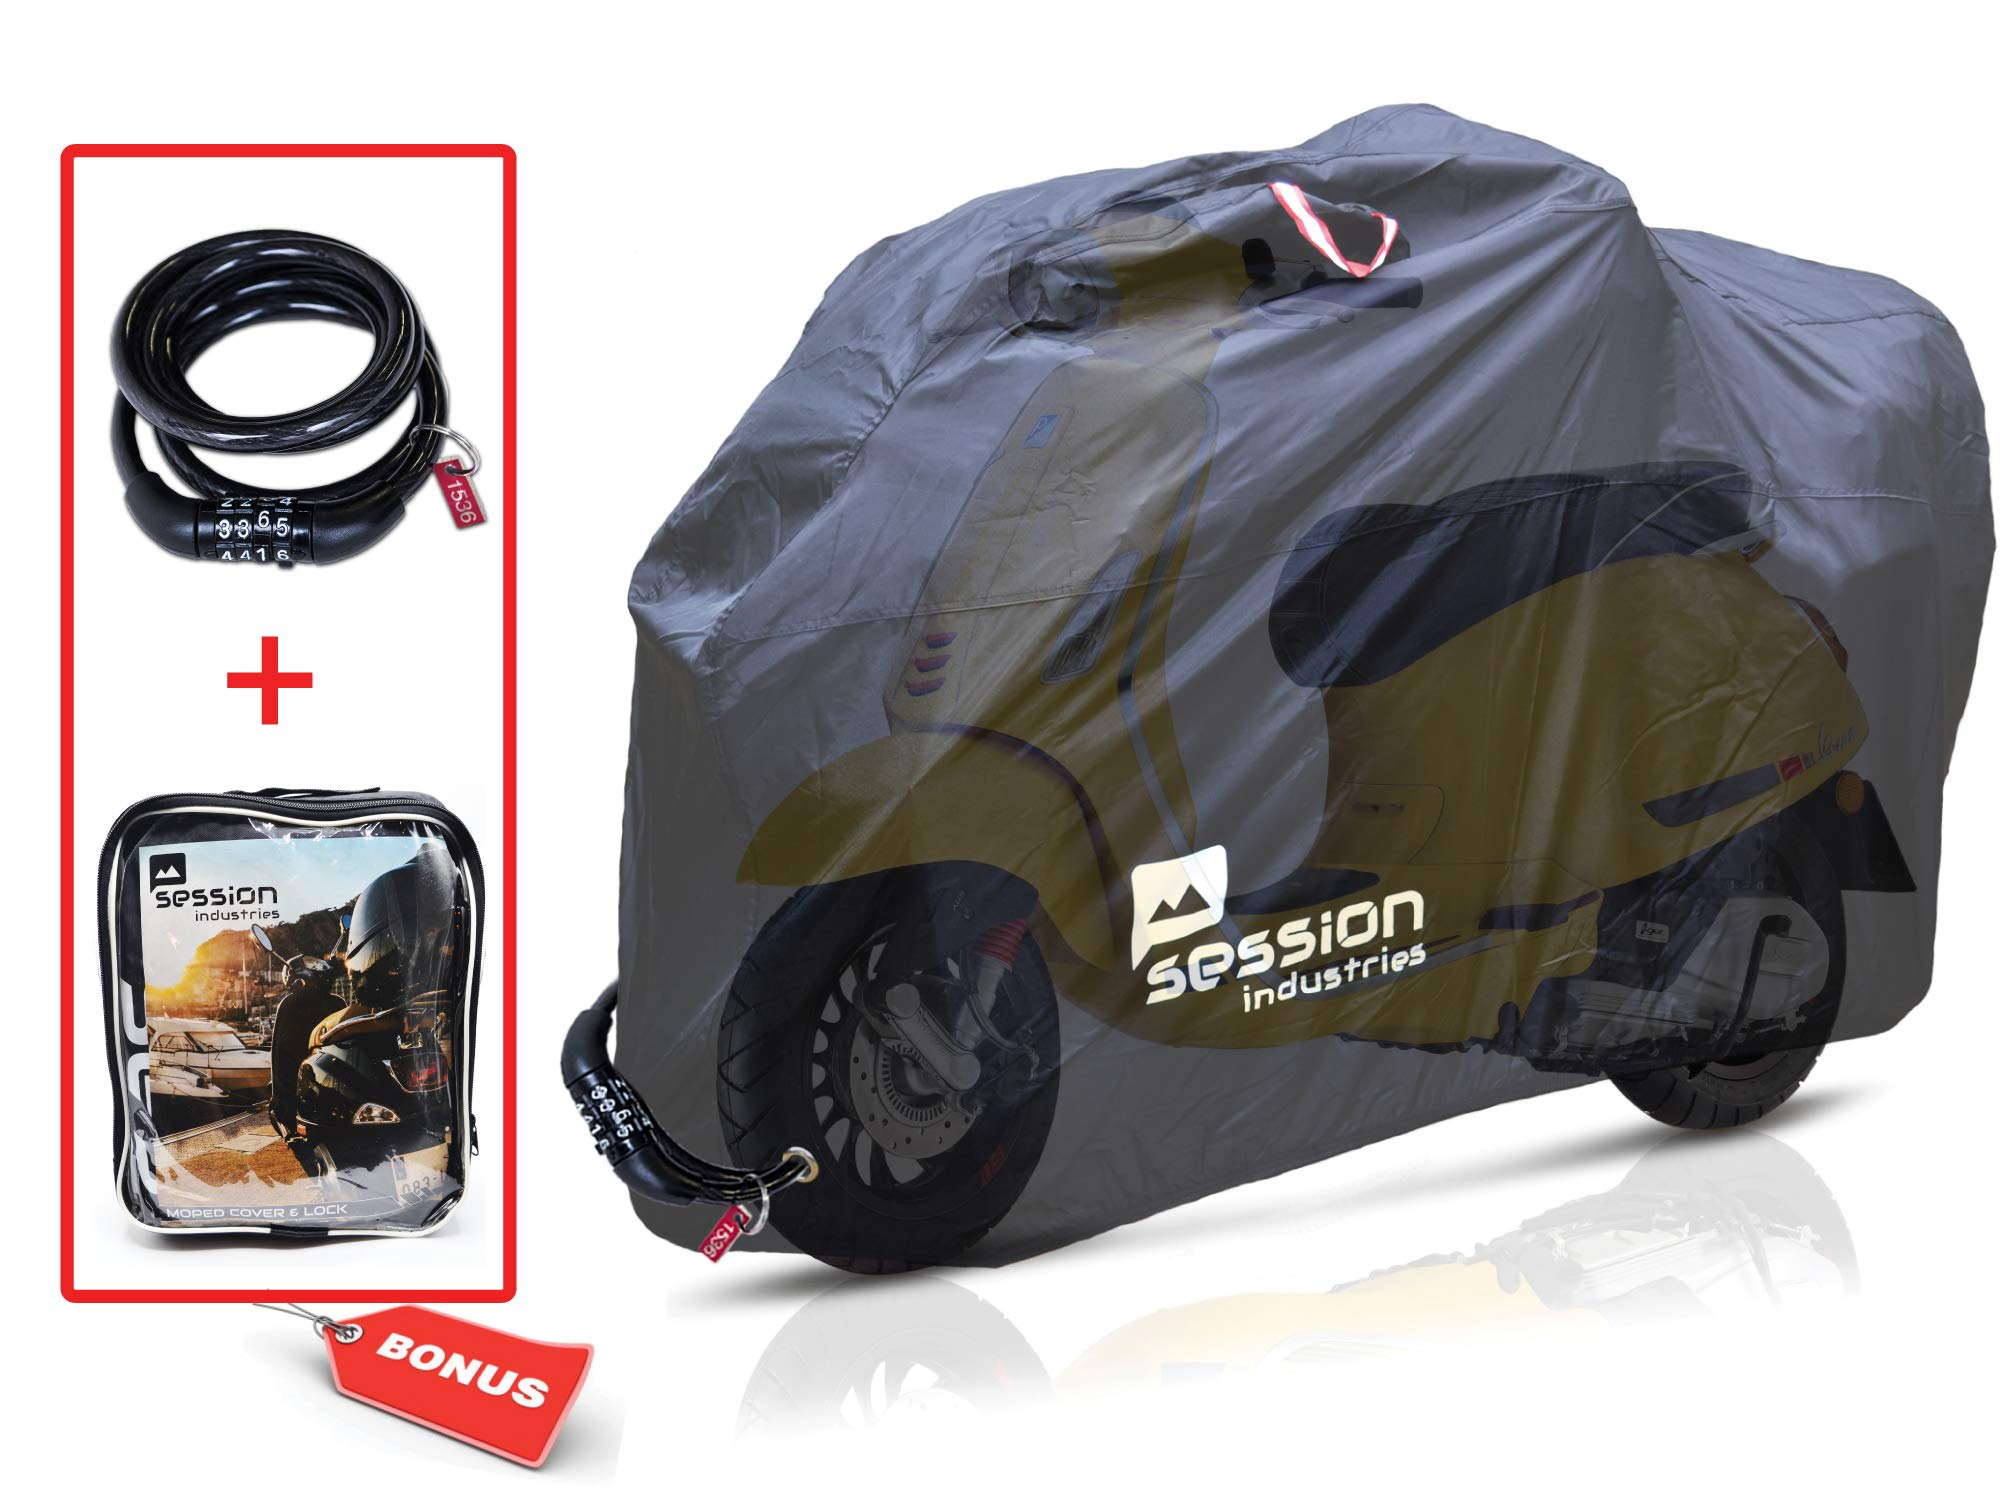 Motorcycle Cover For Moped Scooter - Waterproof Outdoor Bike Storage With Bonus Lock Heavy Duty Tarp Material Bicycle Covers UV Rain Dust Protection Dirt Bike 50cc Accessories by Session Industries Moped Scooter Storage Cover